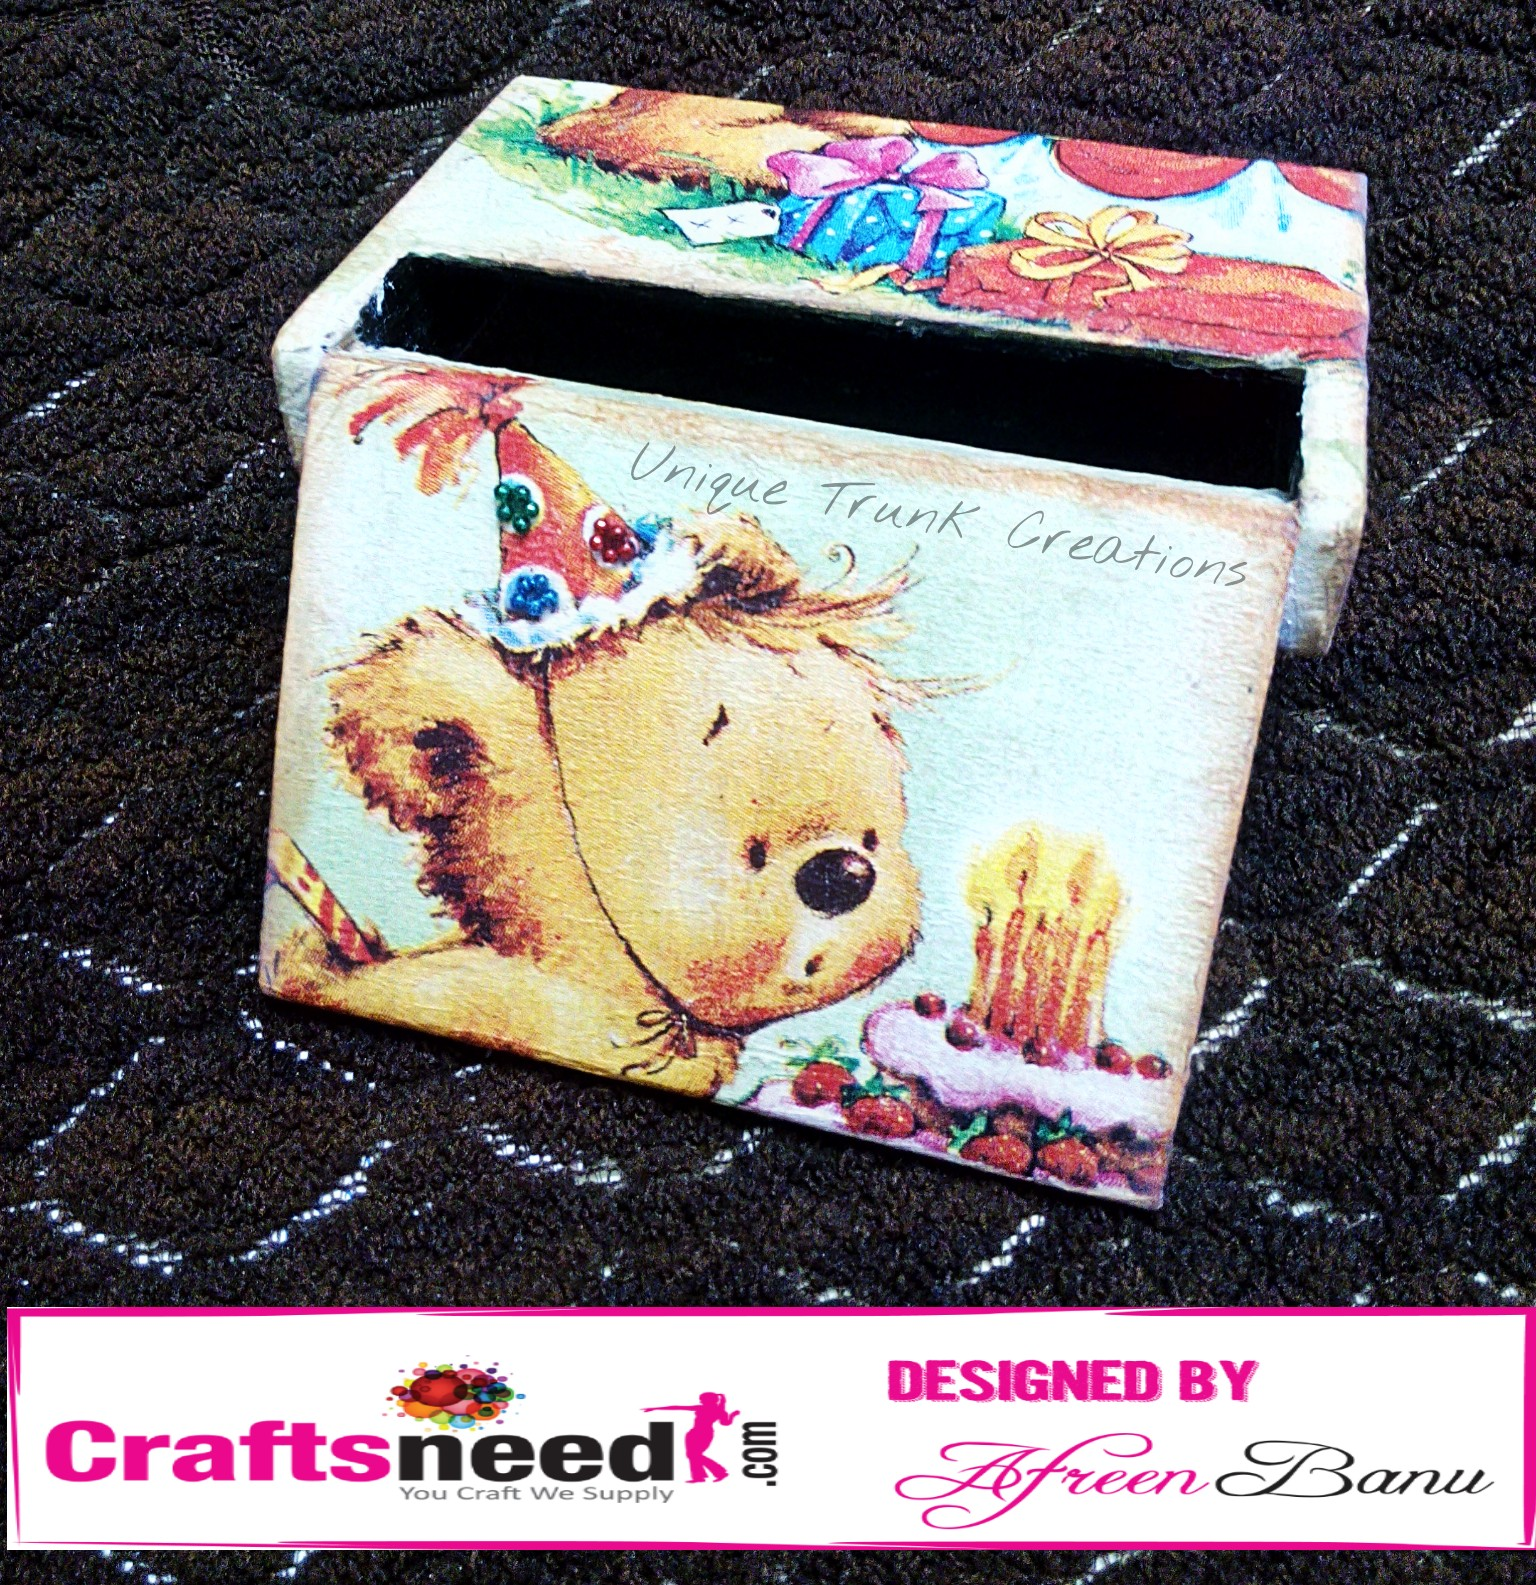 Crafts supply online shop in india buy arts crafts online full view fandeluxe Image collections